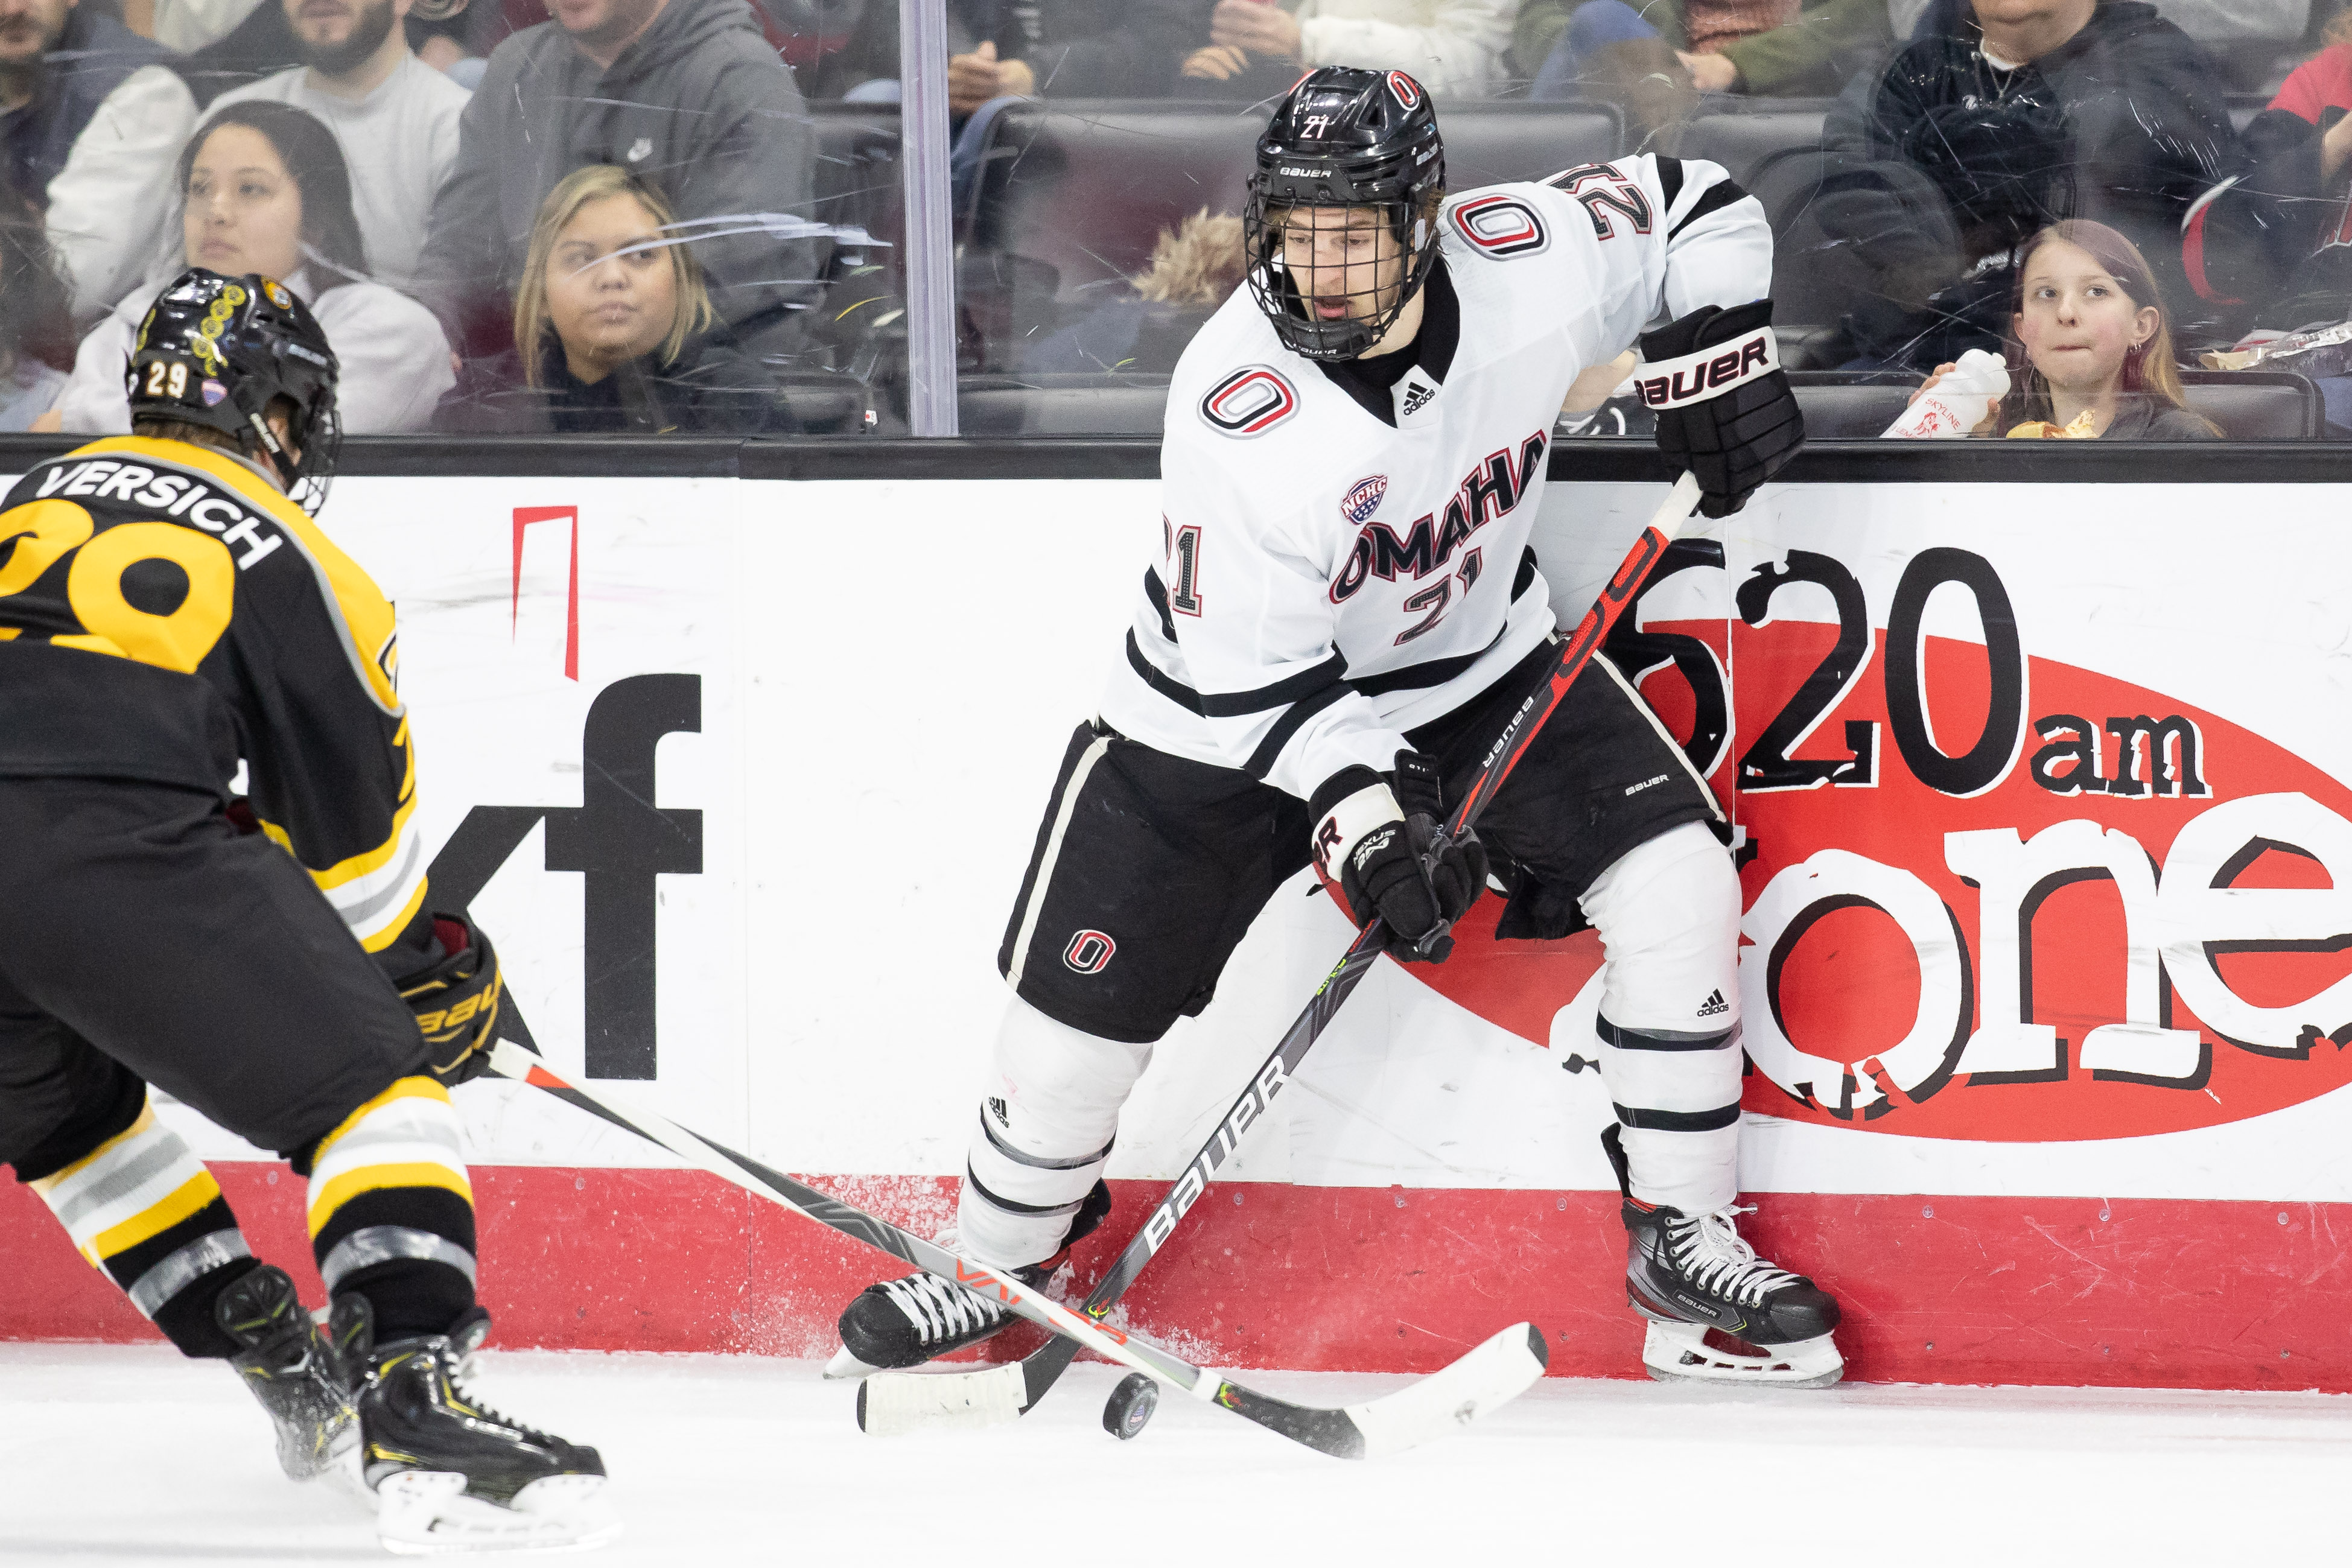 Littleton native Noah Prokup will have the chance to take the ice in an NCAA tournament game Saturday at the same rink as a child he watched the Colorado Eagles play at. Photo courtesy of Nebraska Omaha athletics